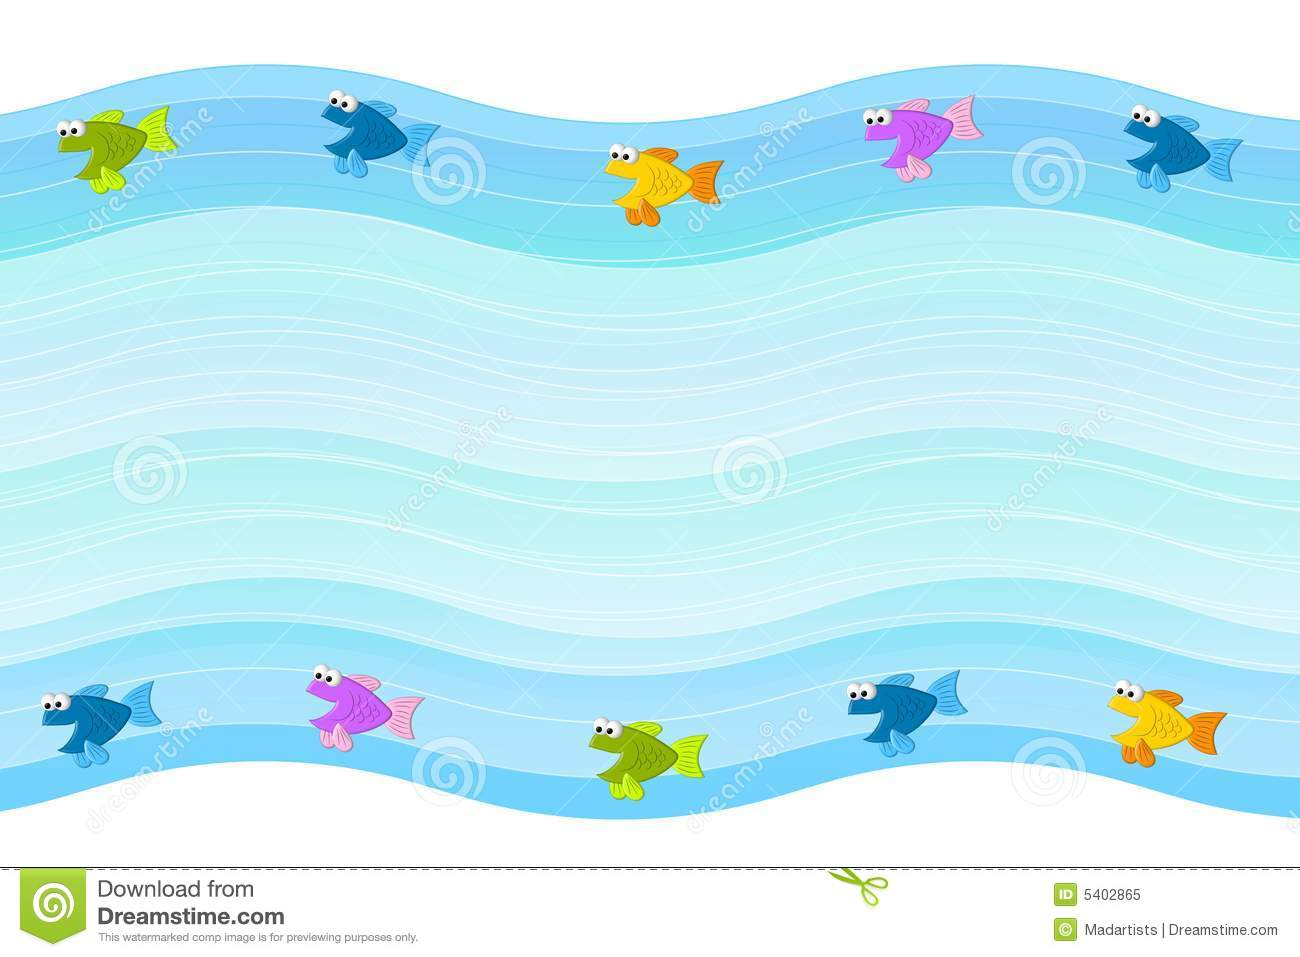 little fish border background stock illustration illustration of rh dreamstime com Large Fish Clip Art Border Fish Clip Art Borders and Corners